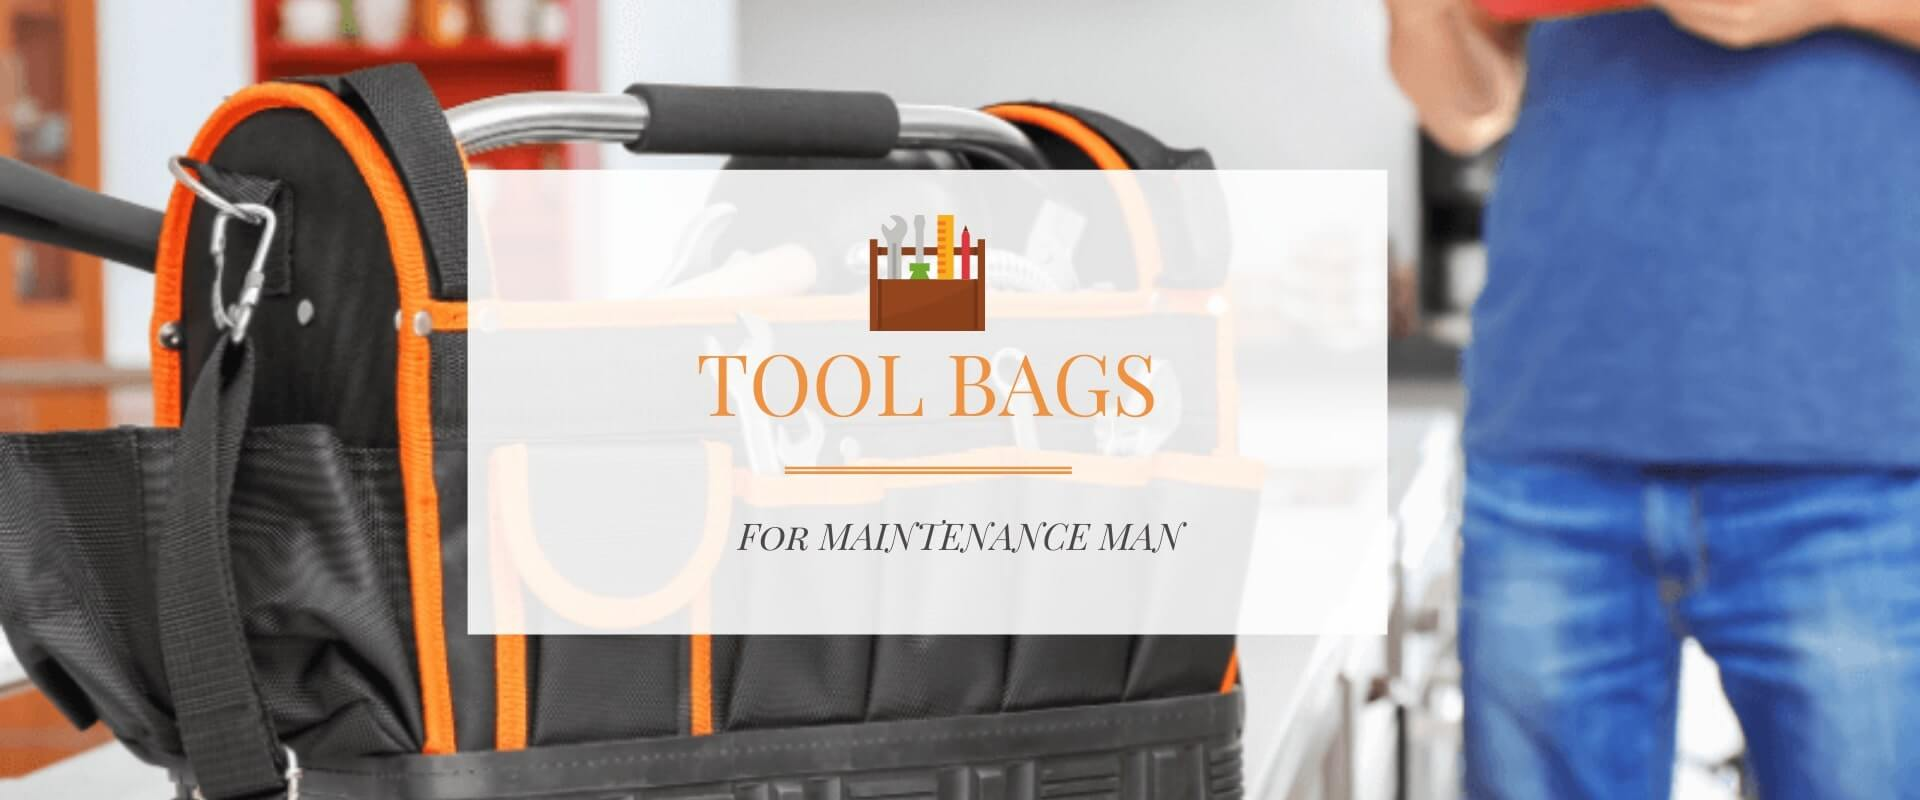 Best Tool Bag for Maintenance Man Featured Image